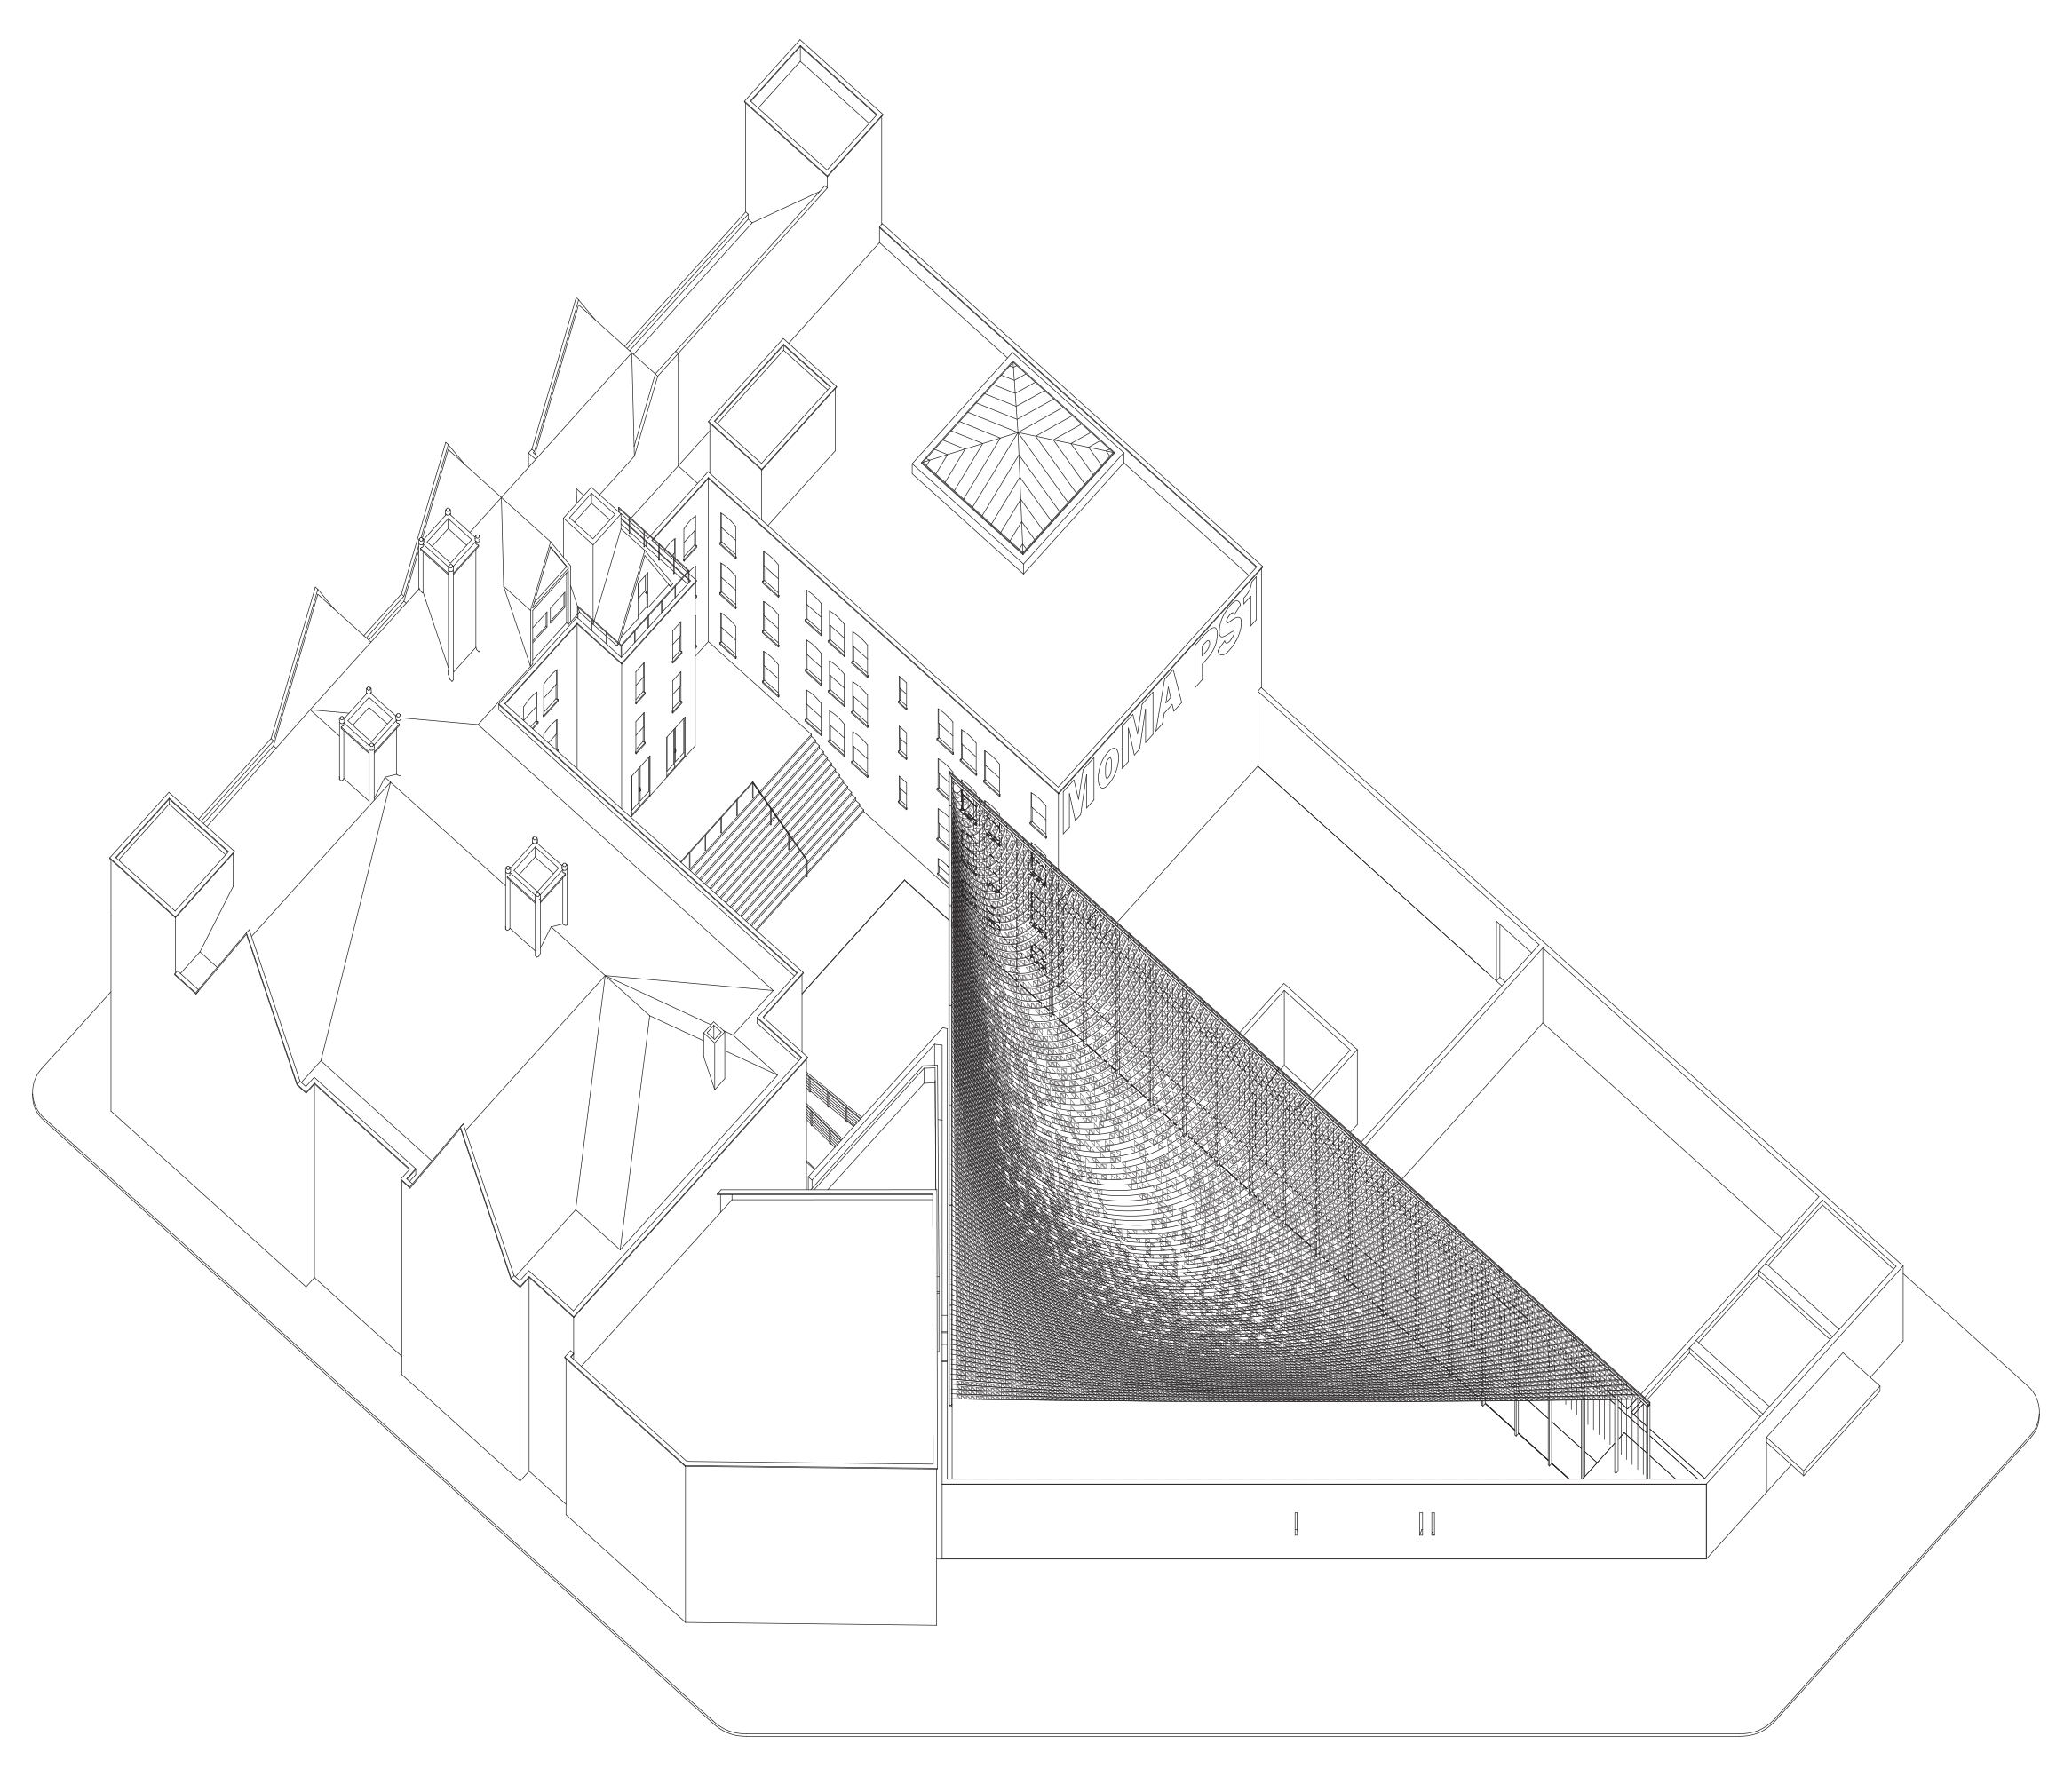 spatial drawing proposal